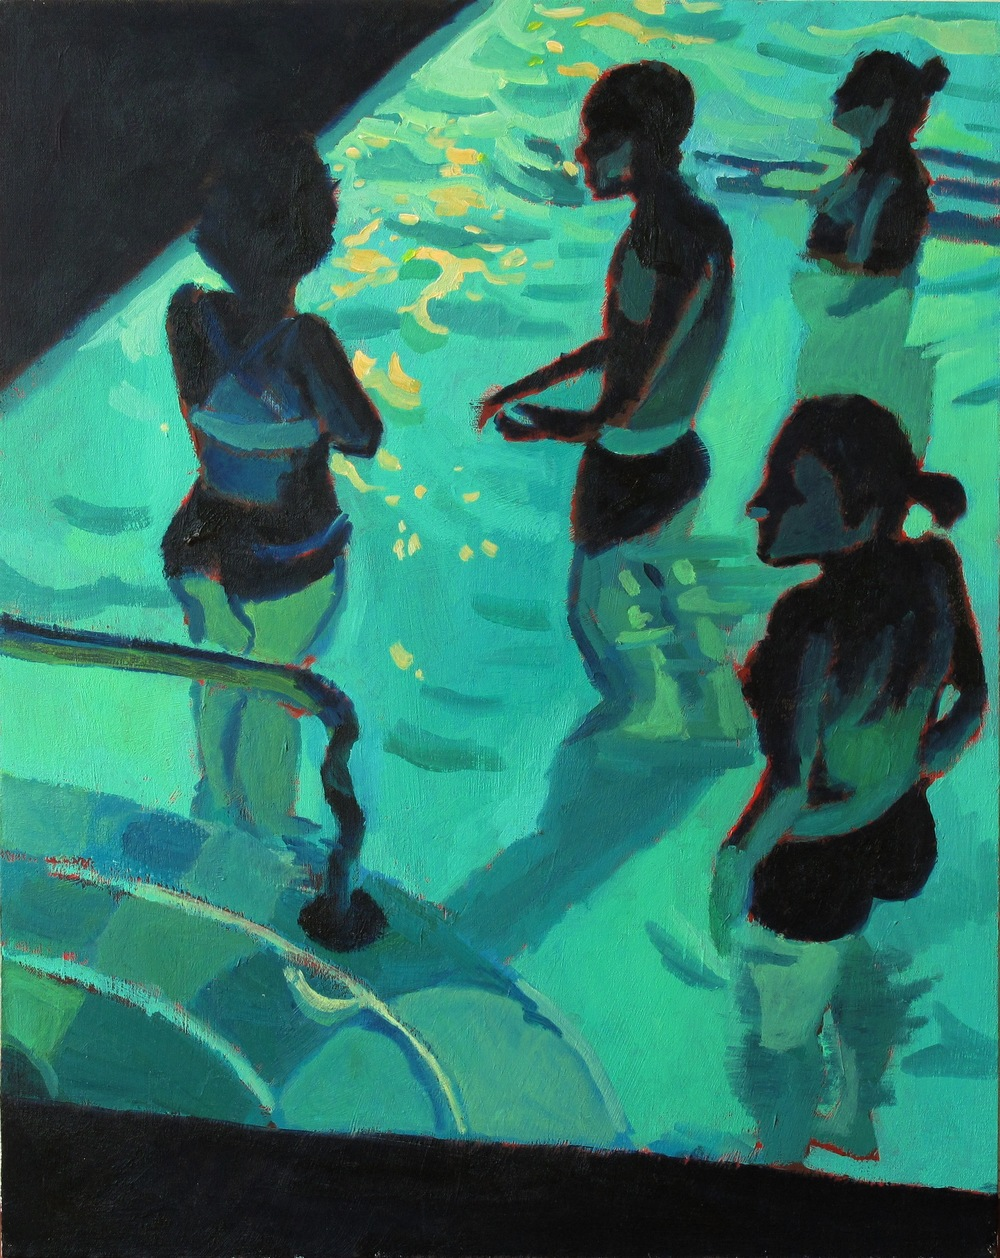 Untitled (Pool Swimmers no. 3)